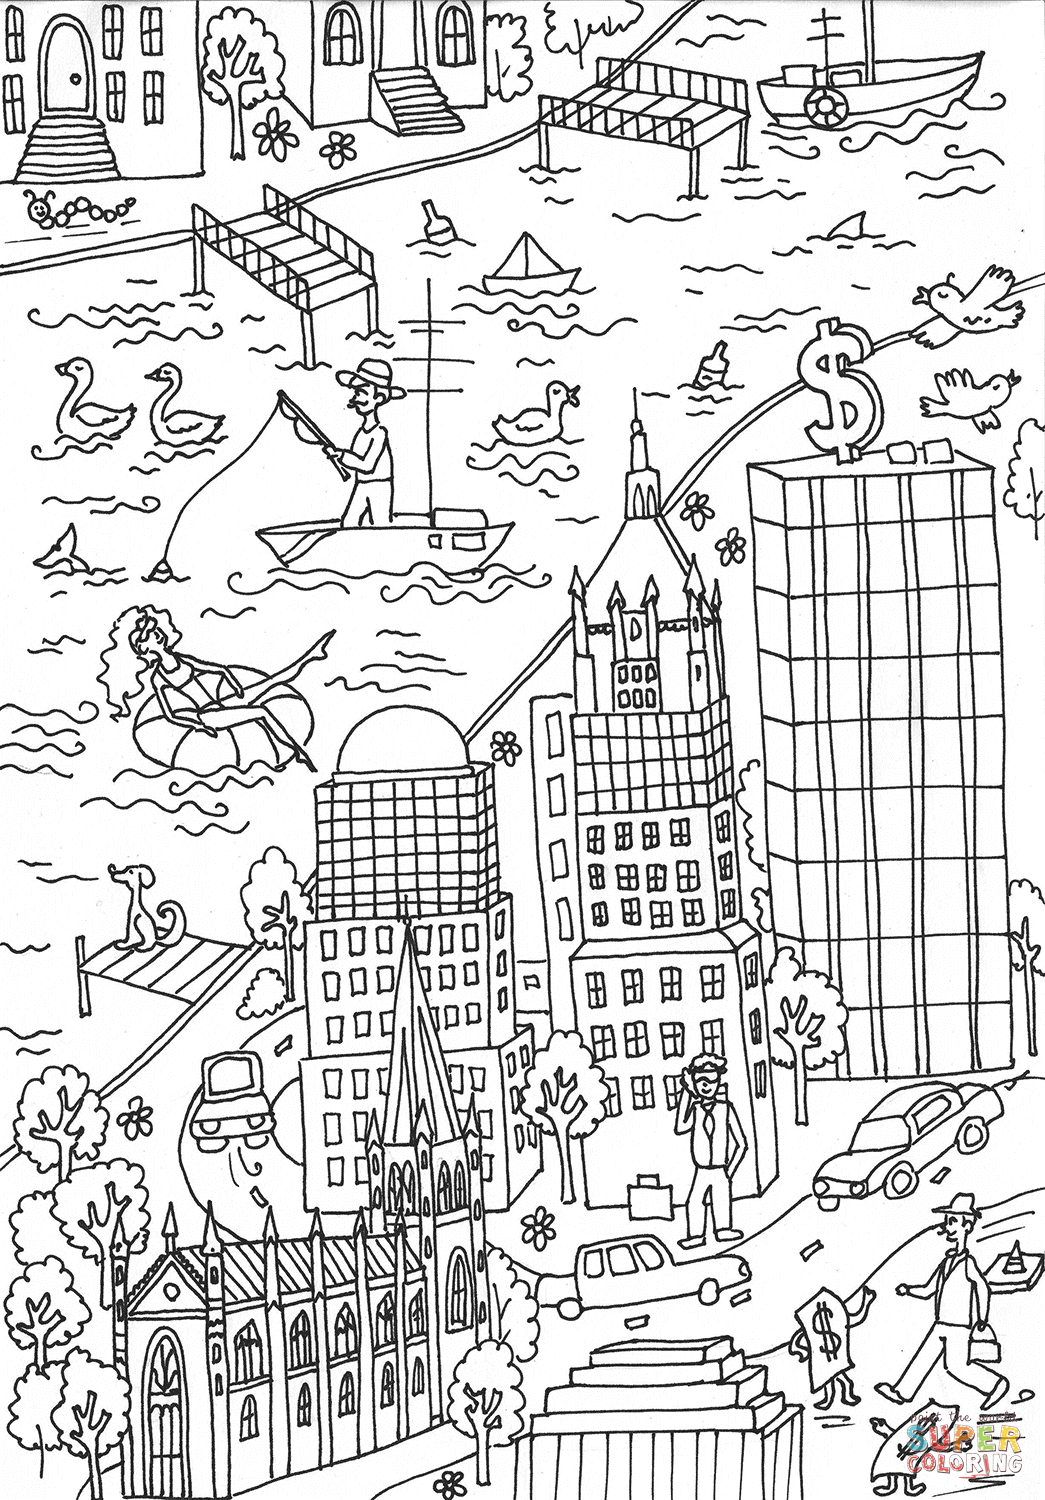 street coloring pages creative haven main street coloring book teresa goodridge pages coloring street